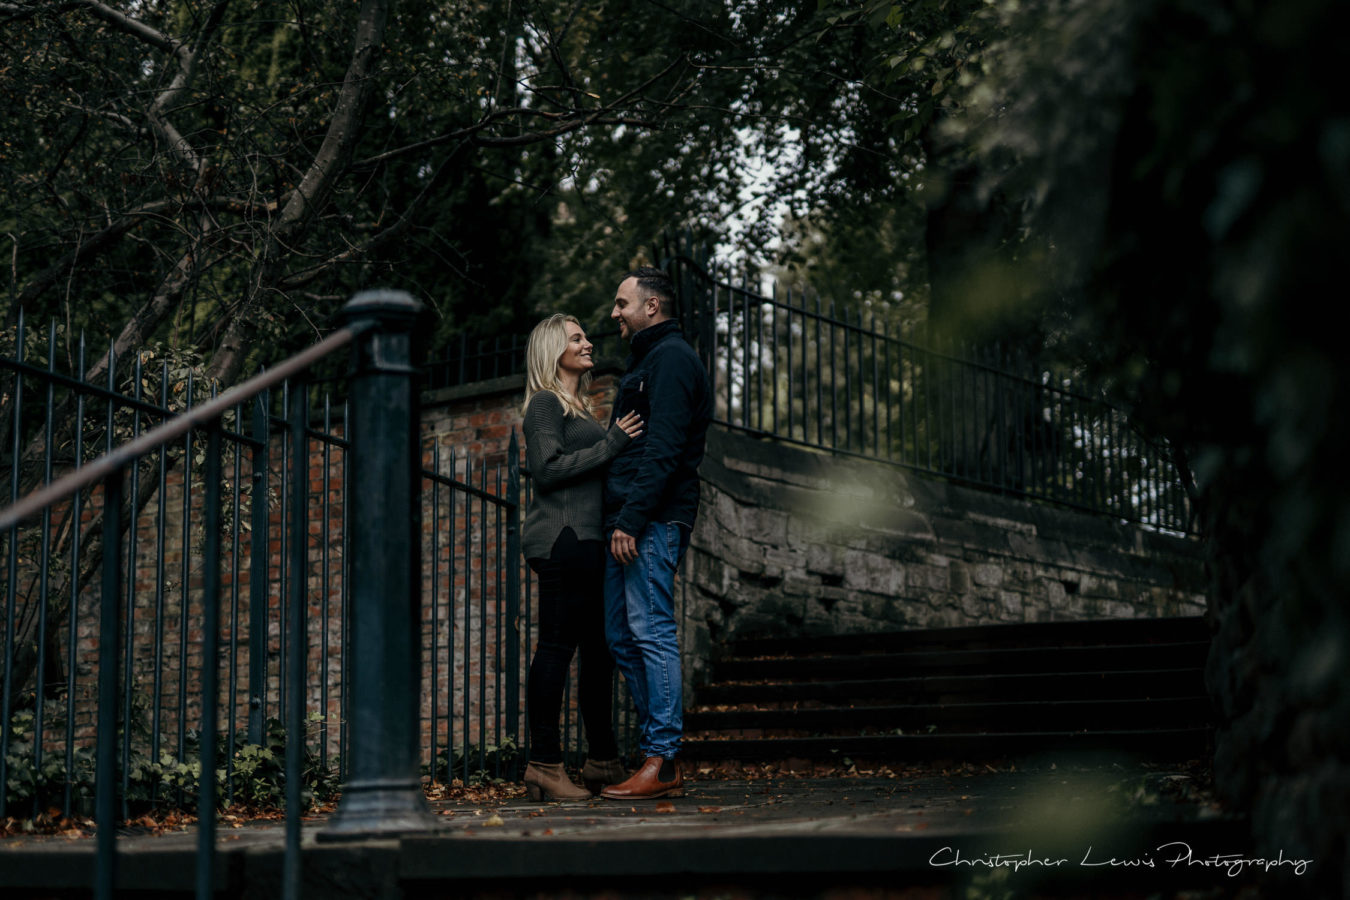 Chester-Pre-Wedding-Shoot-Christopher-Lewis-Photography-11